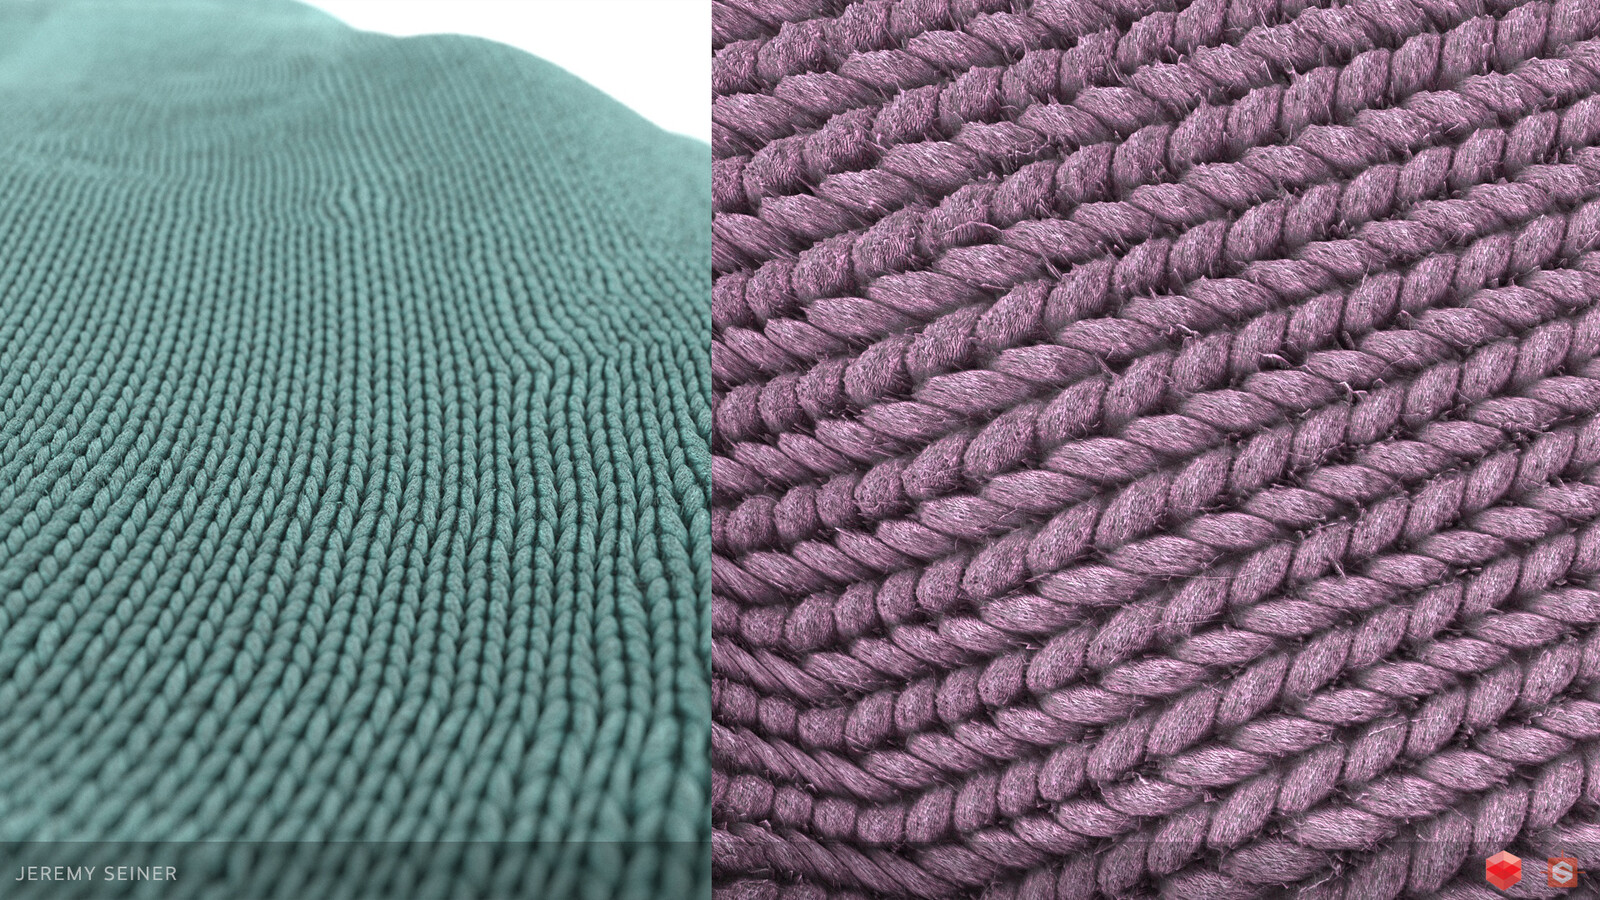 Close-ups of the standard wool knit pattern texture.